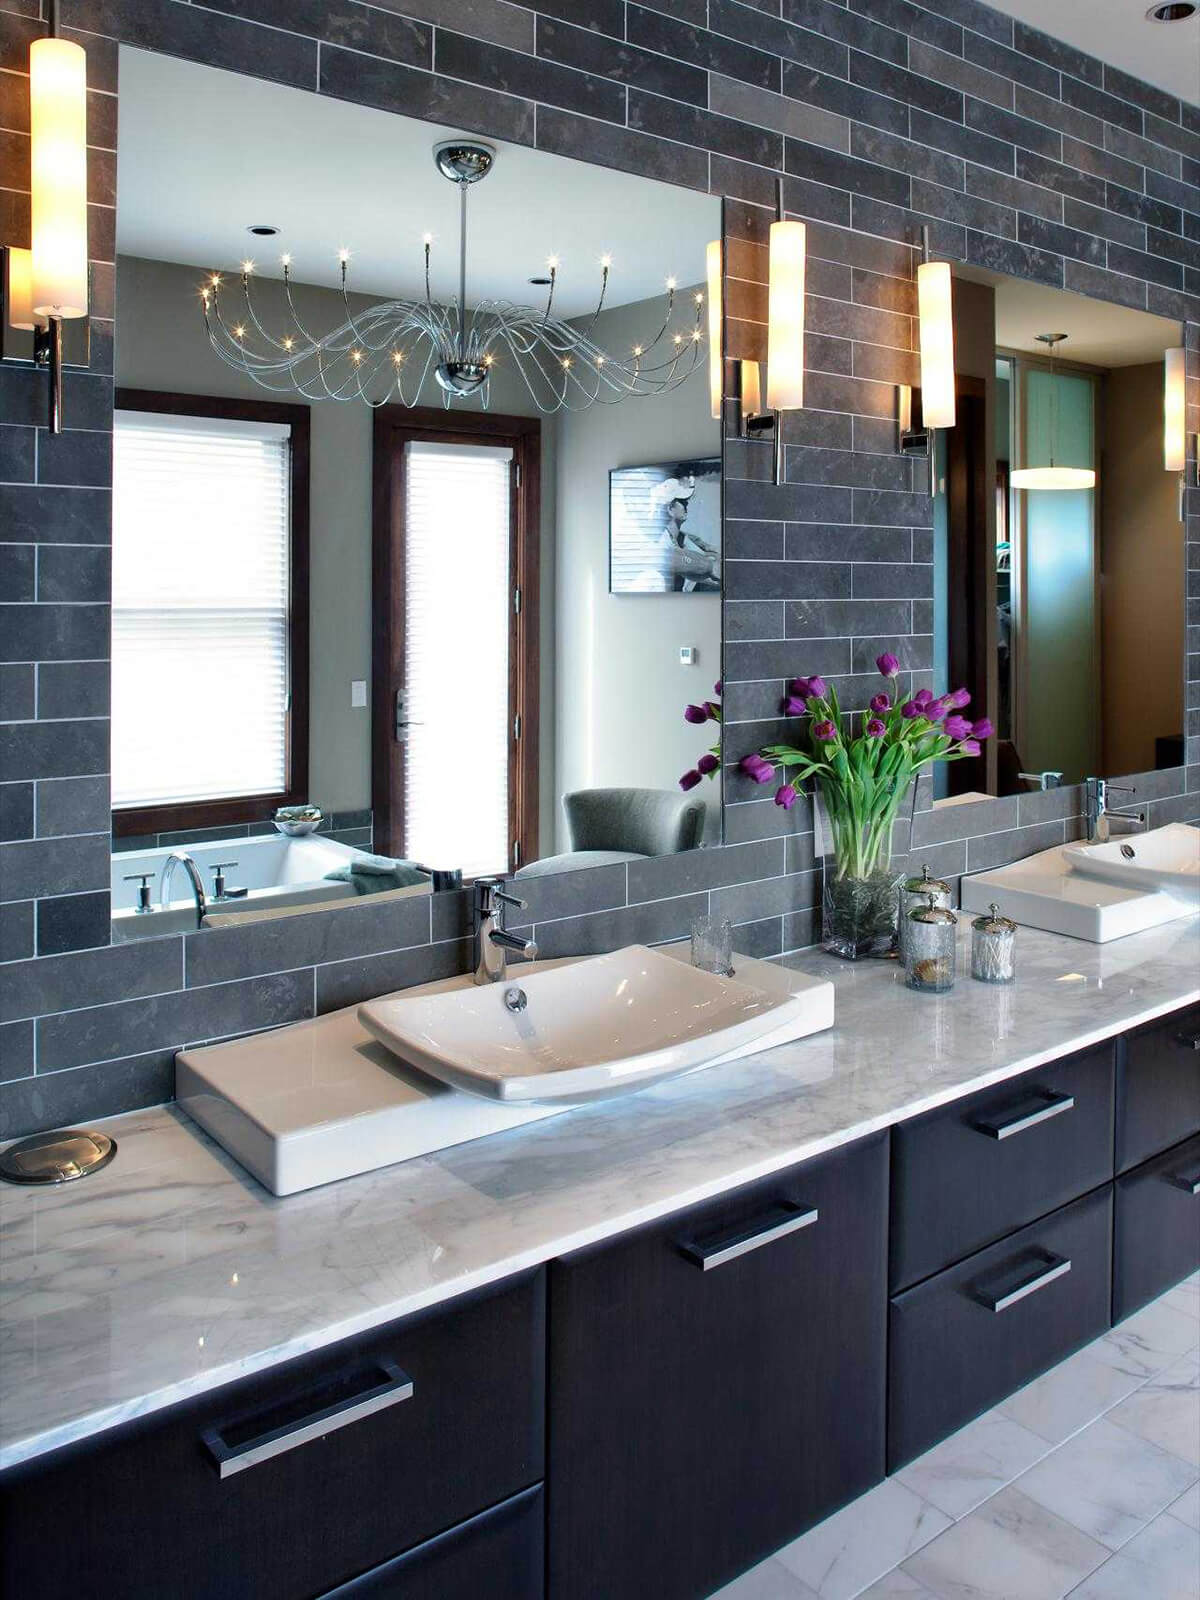 Marble Counter with Coordinated Backsplash